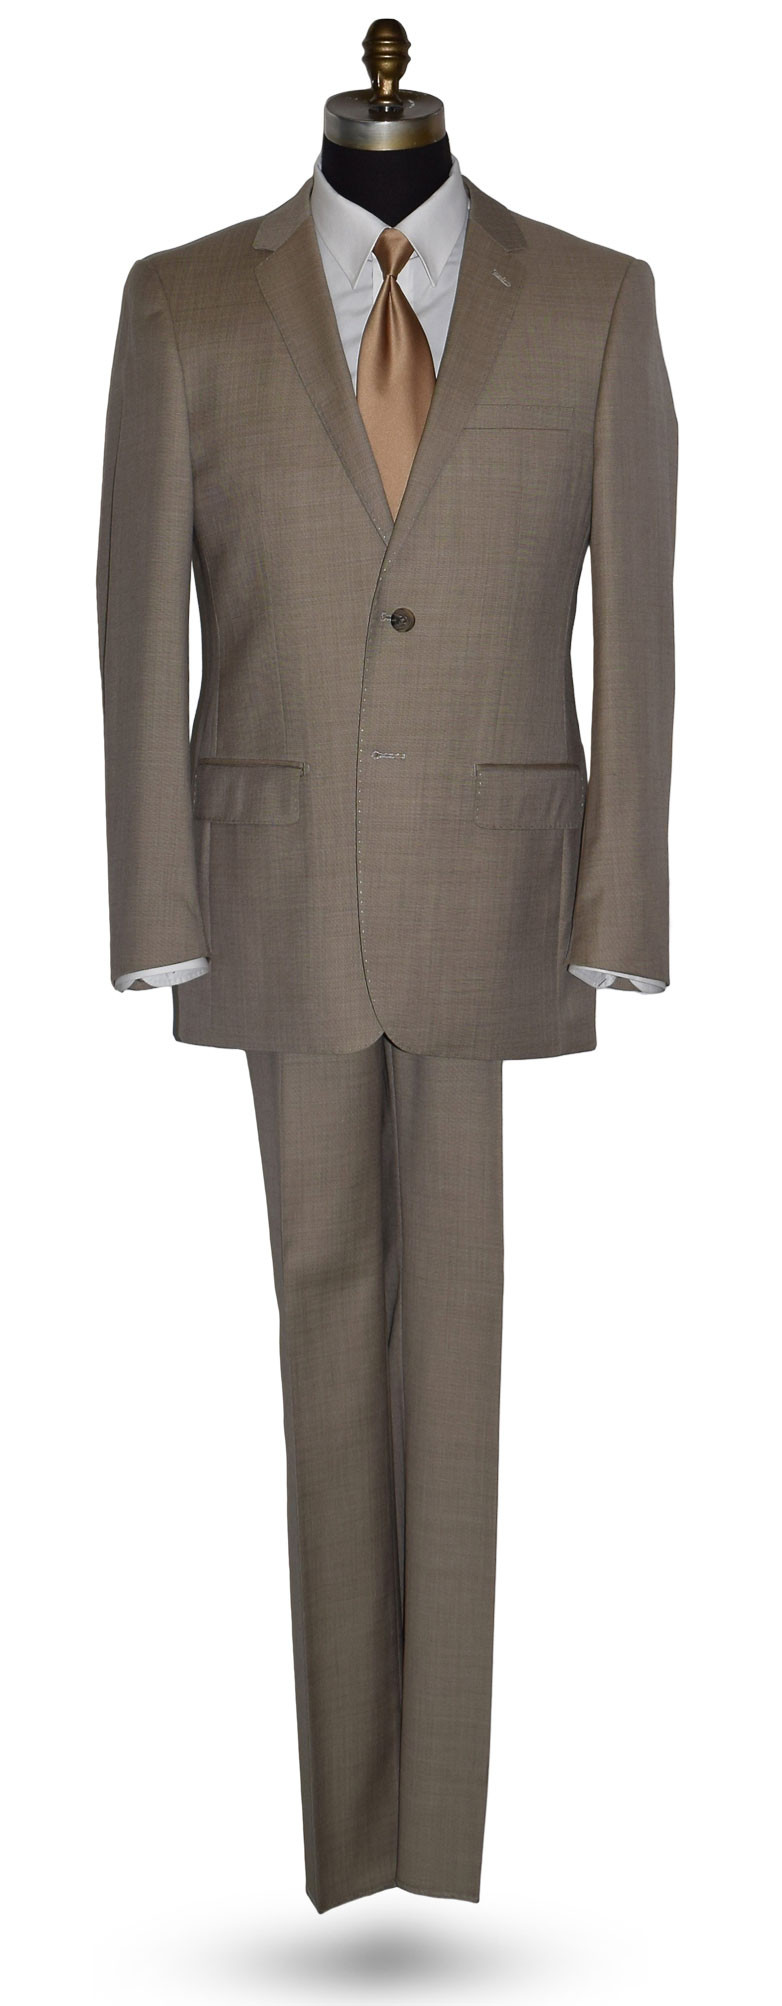 Biscotti Tan Suit - Cashmere and Super Fine Wool